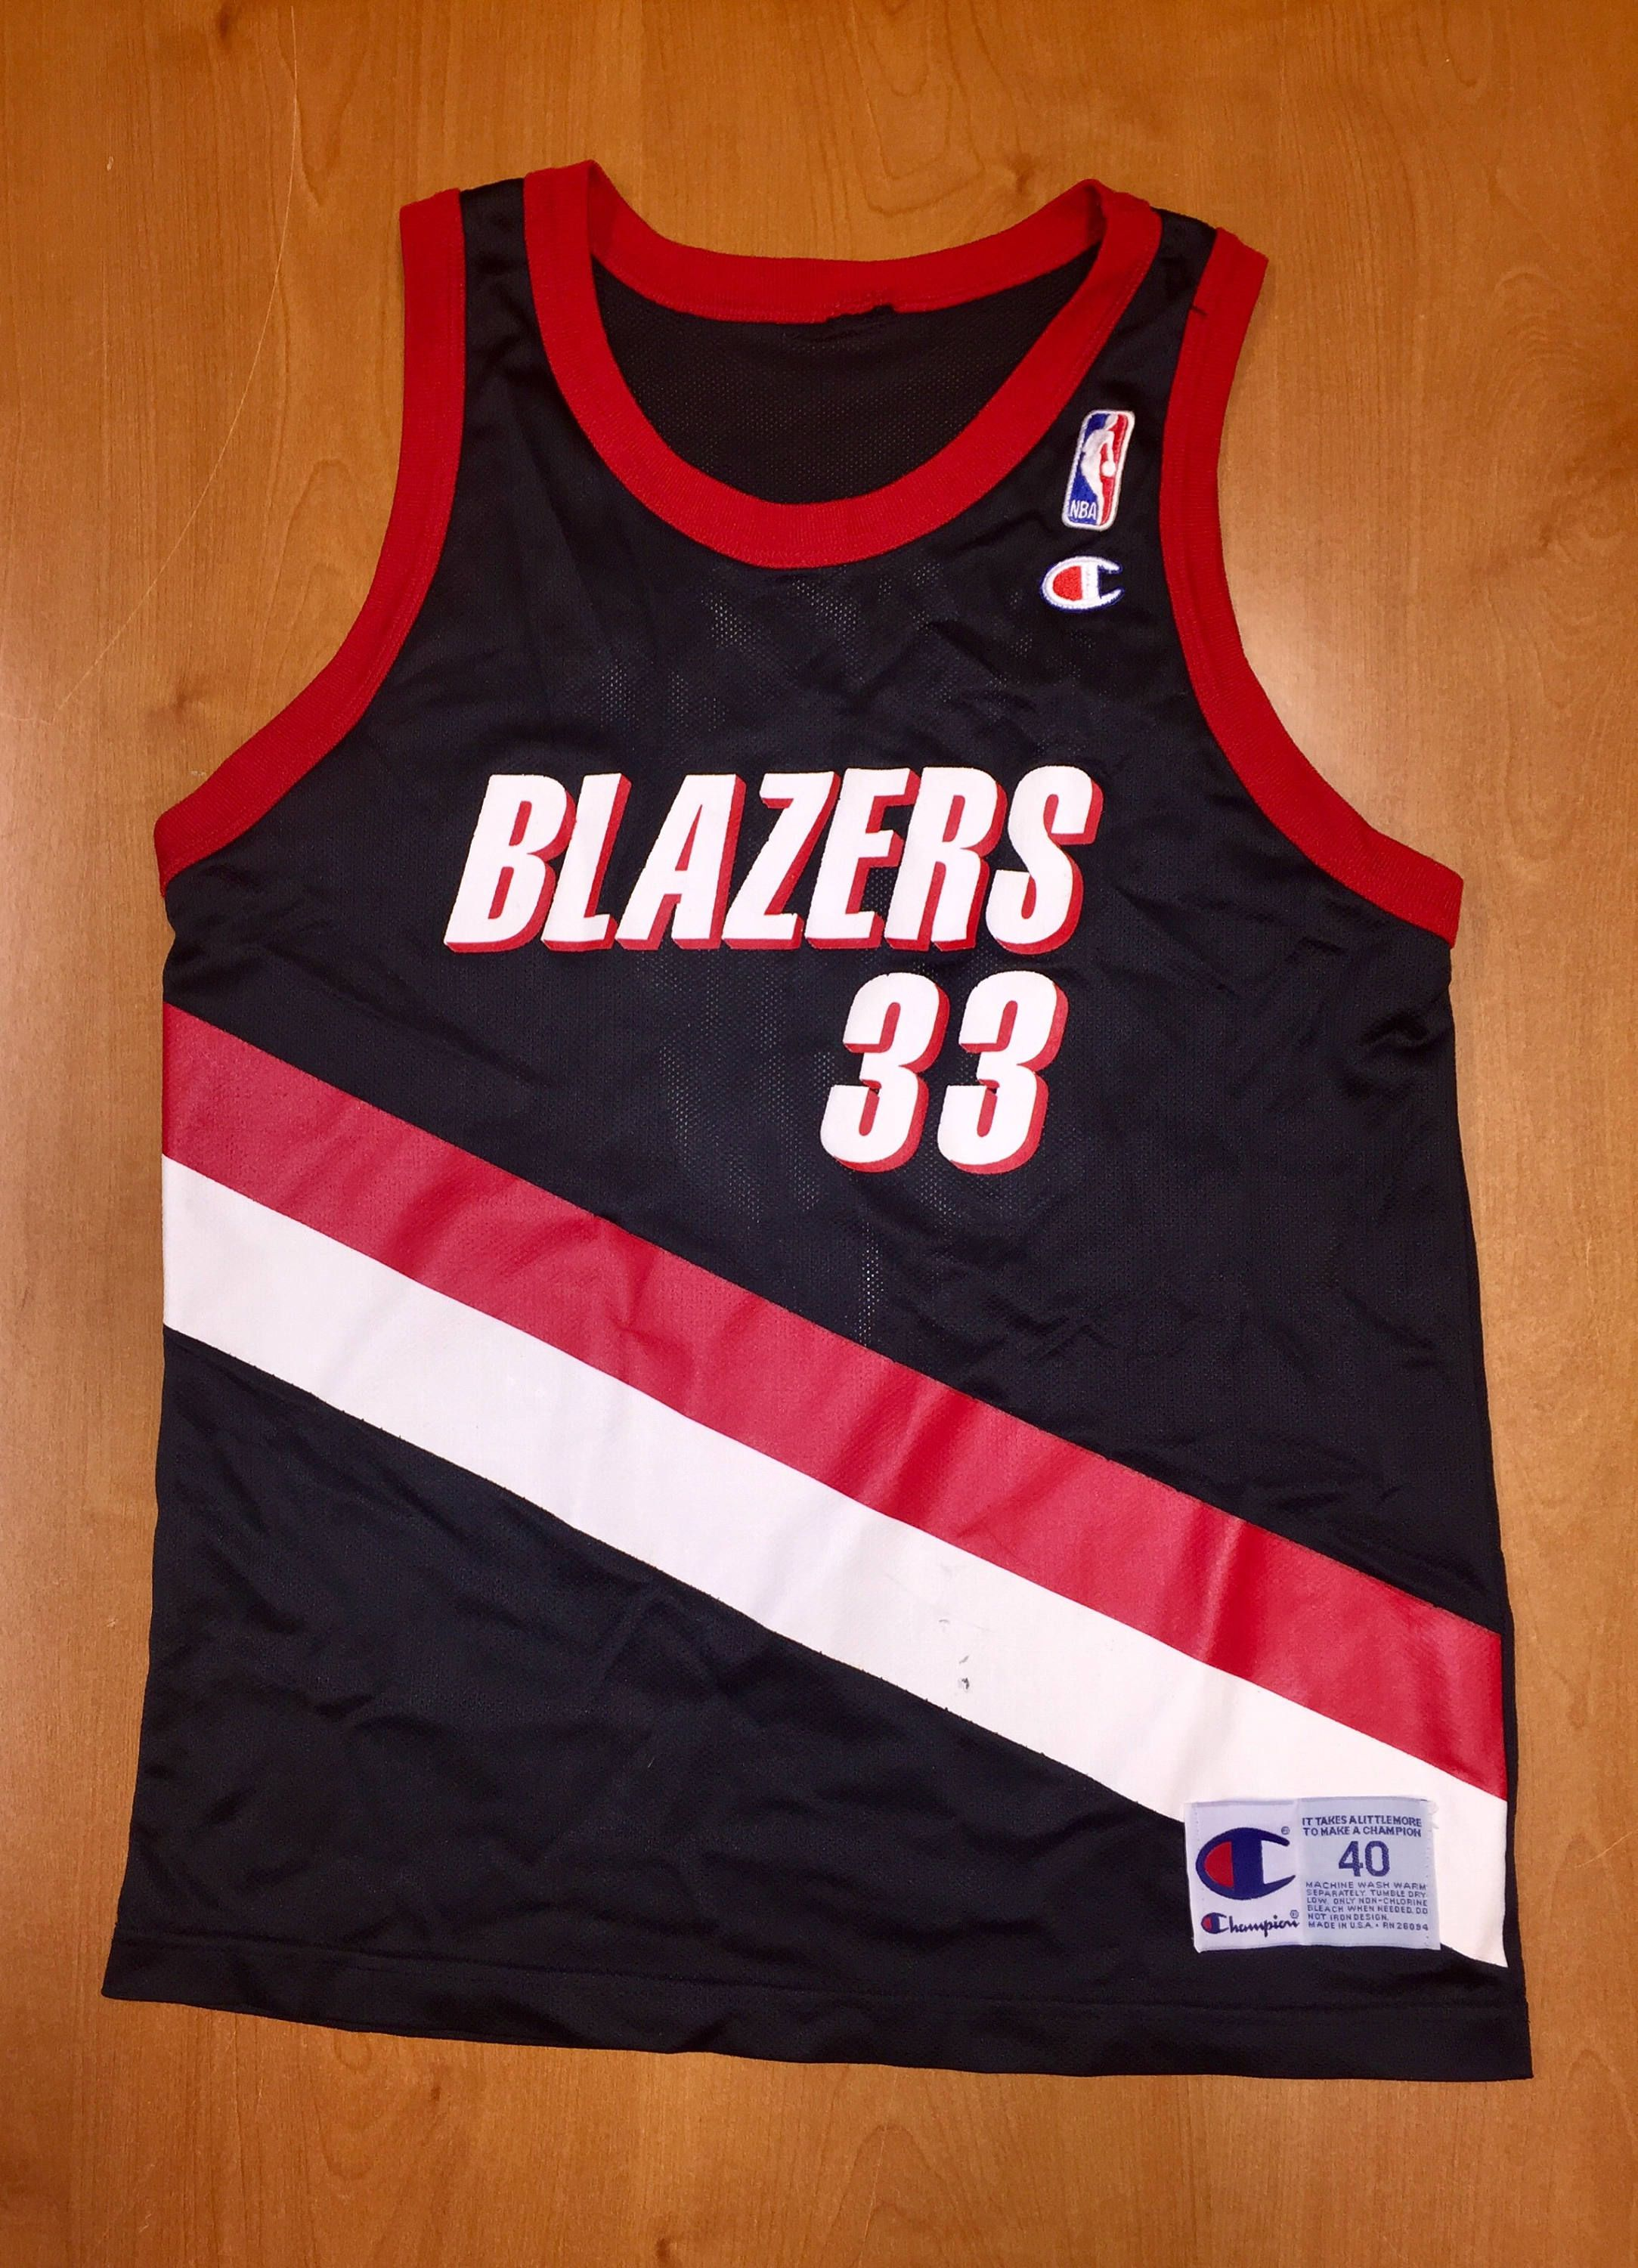 94d59196b661 Vintage 1990s Scottie Pippen Portland Trailblazers Champion Jersey Size 40  kevin duckworth detlef schrempf rasheed wallace chicago bulls nba by ...